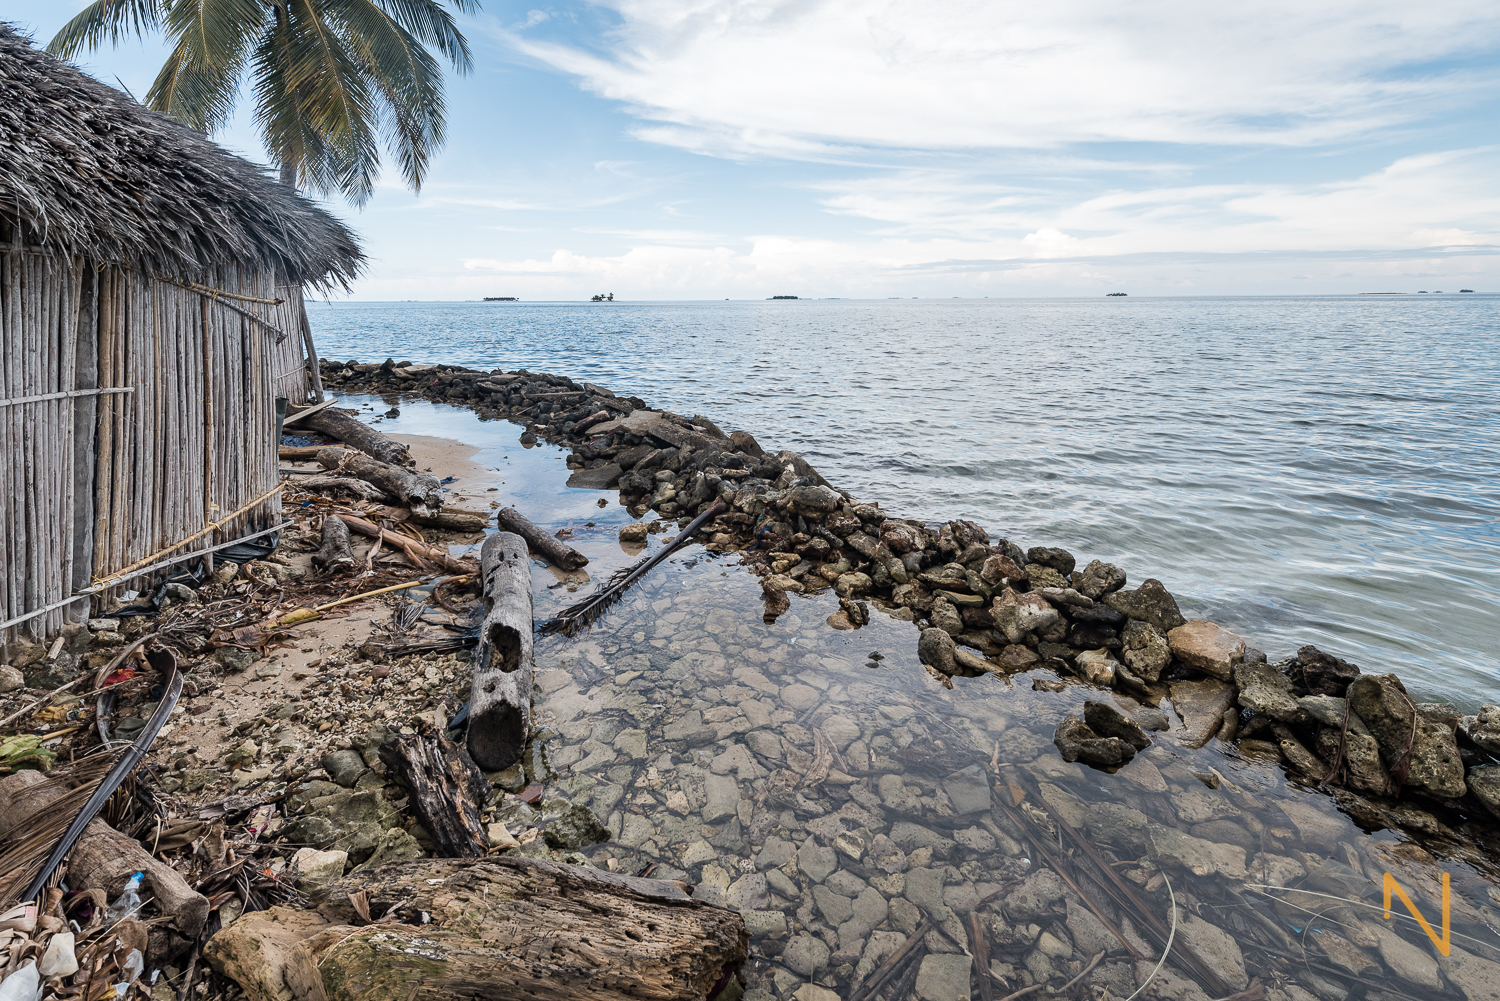 A rudimental barrier made with a mix of rocks, dead corals, sand and trash.